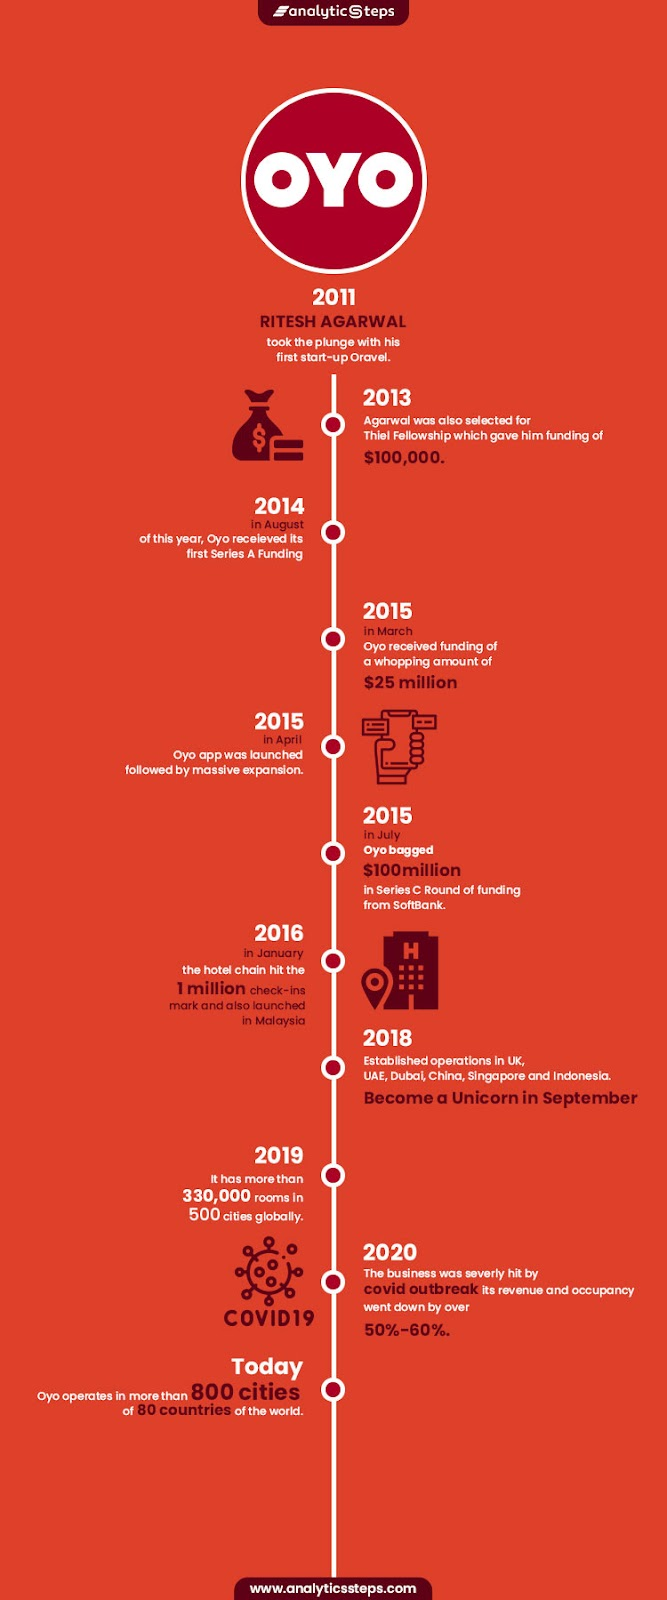 The infographic shows the timeline of OYO's journey.